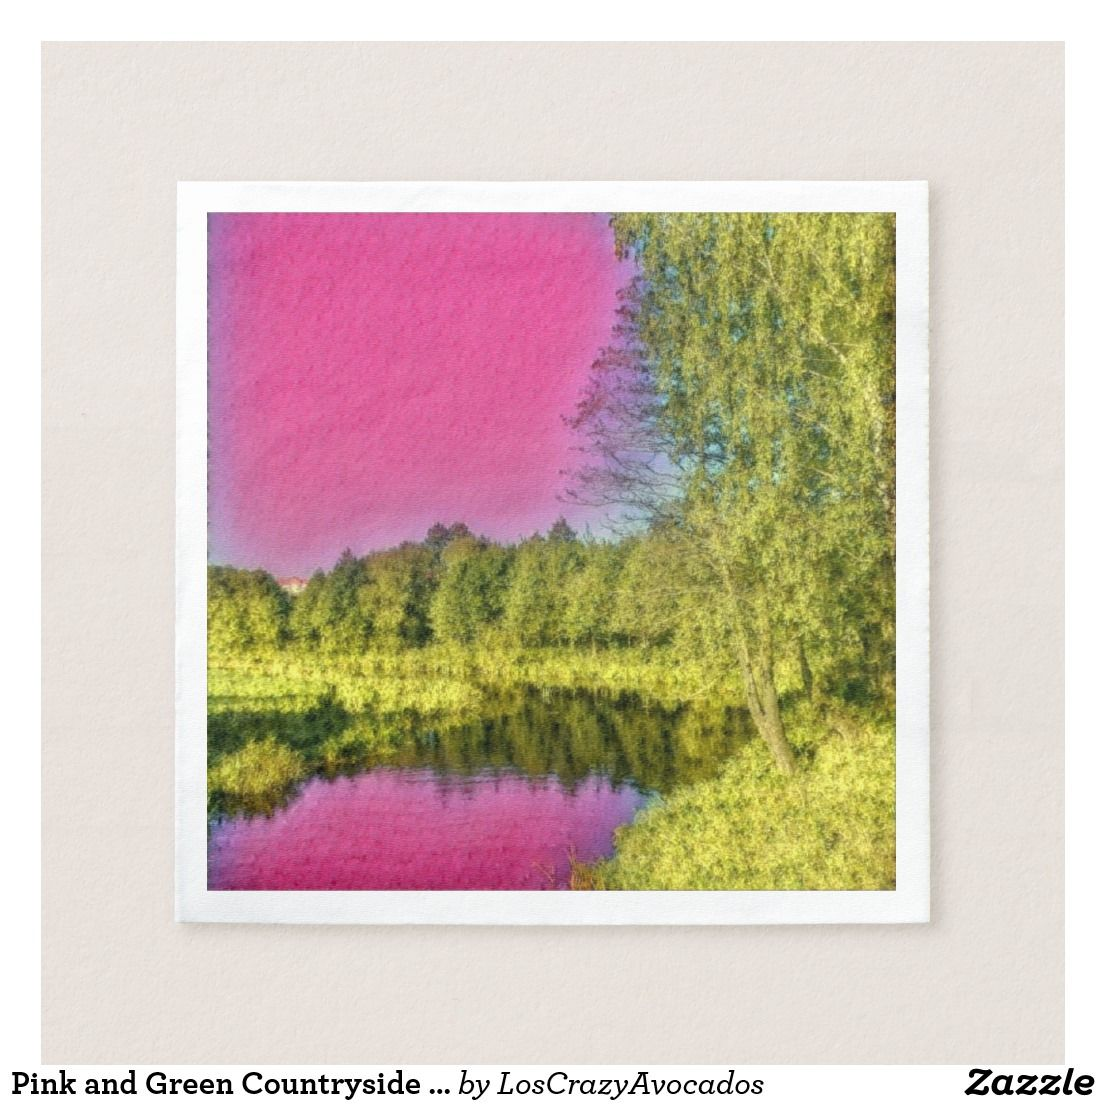 Pink and green countryside landscape paper napkin gift ideas pink and green countryside landscape paper napkin jeuxipadfo Images